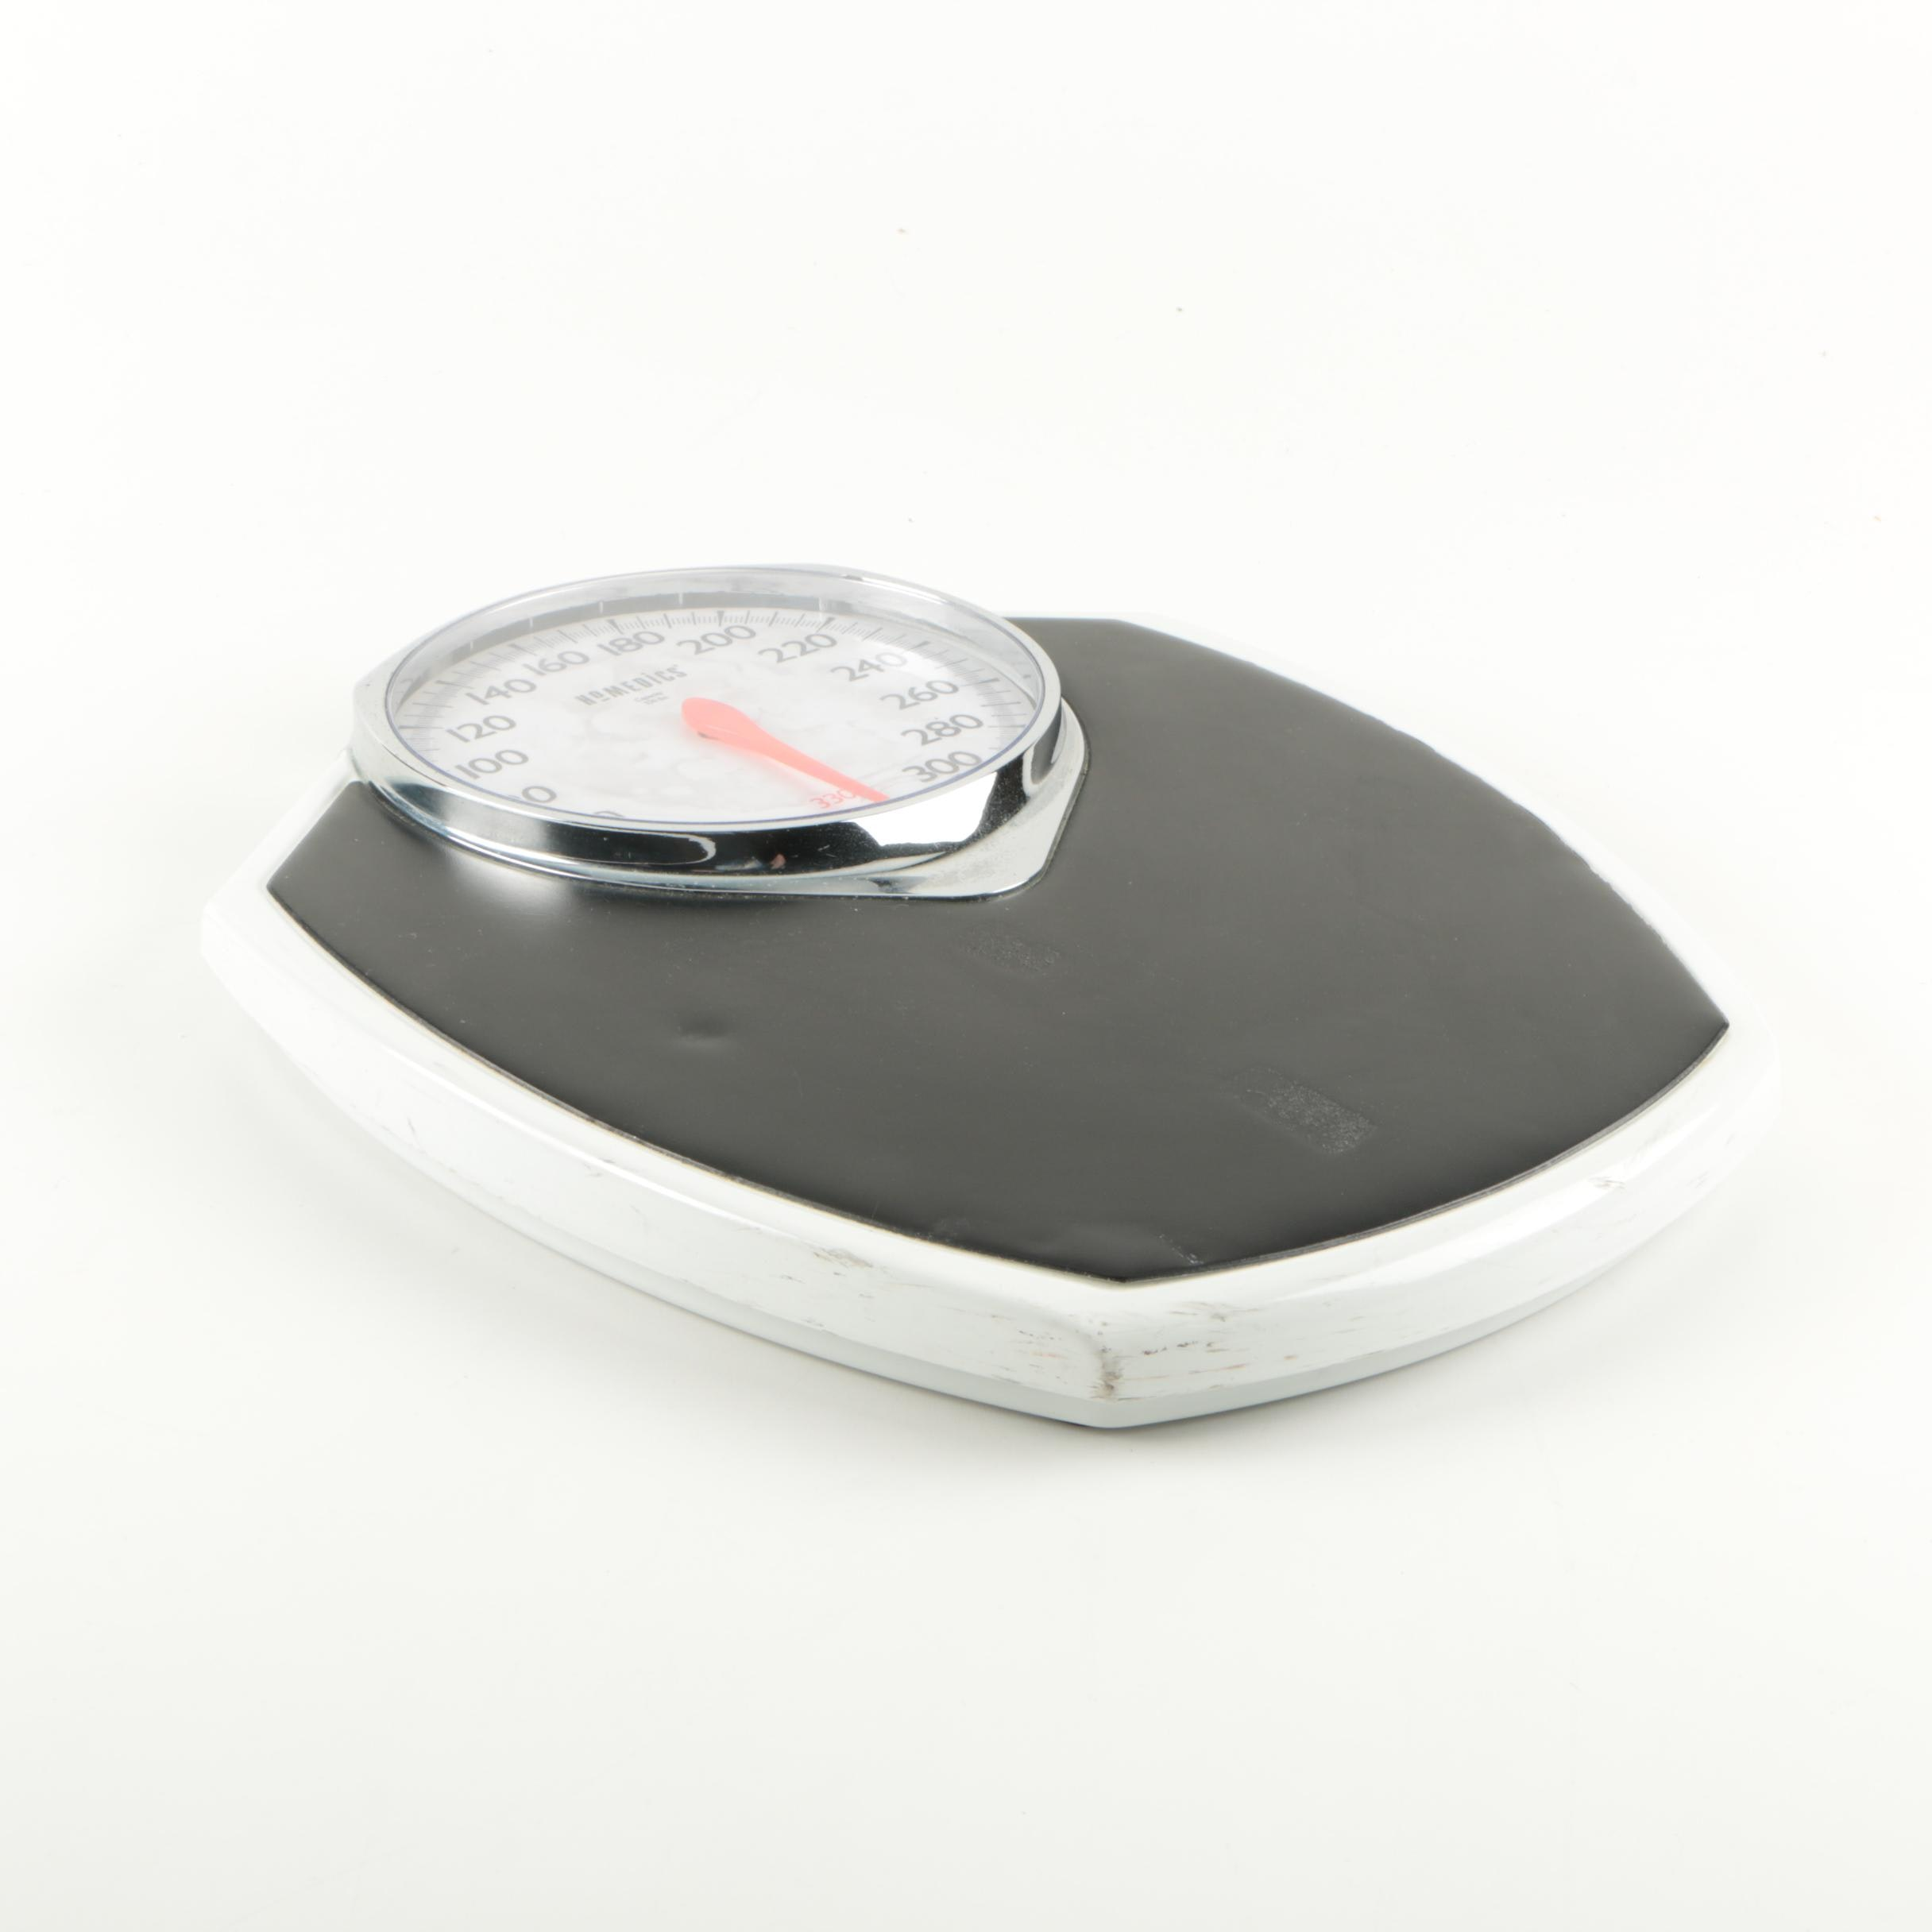 HoMedics Scale